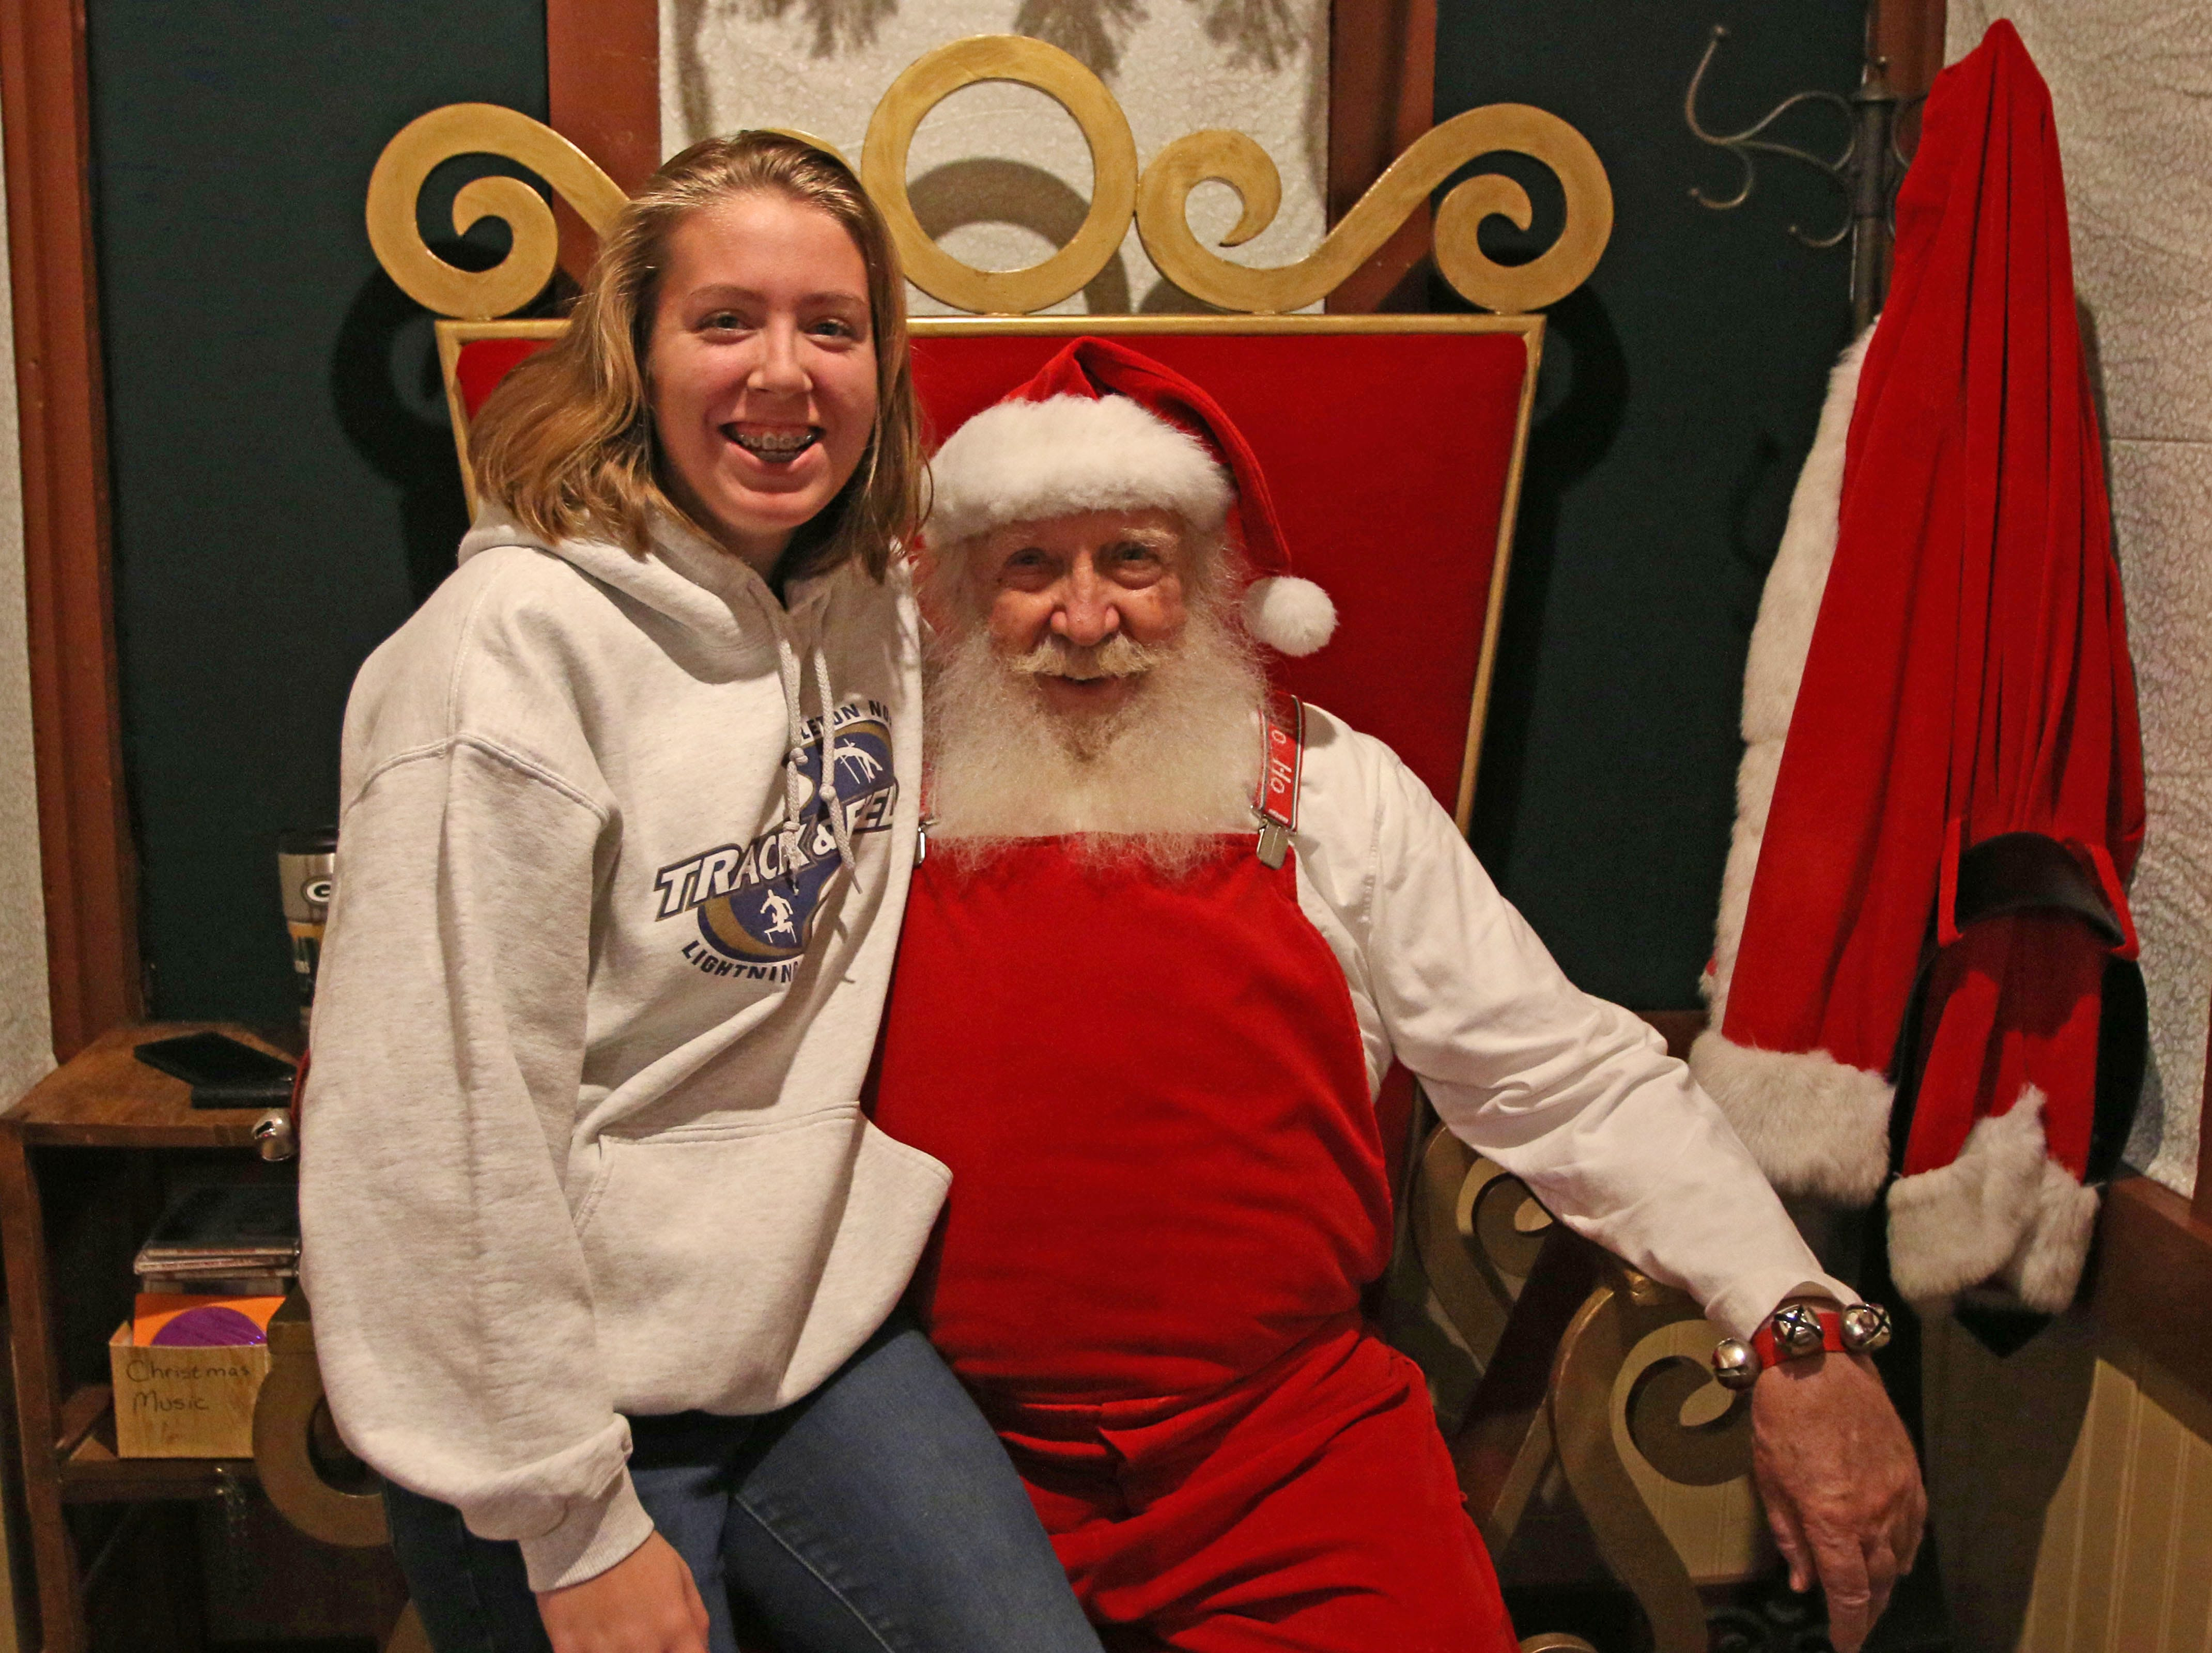 Ally Schipper, 15, of Appleton, Wis., poses with Santa Claus at the Sheboygan County Historical Museum's Holiday Memories, Friday, November 23, 2018, in Sheboygan, Wis. Santa will be at the show from time to time in the next weeks.